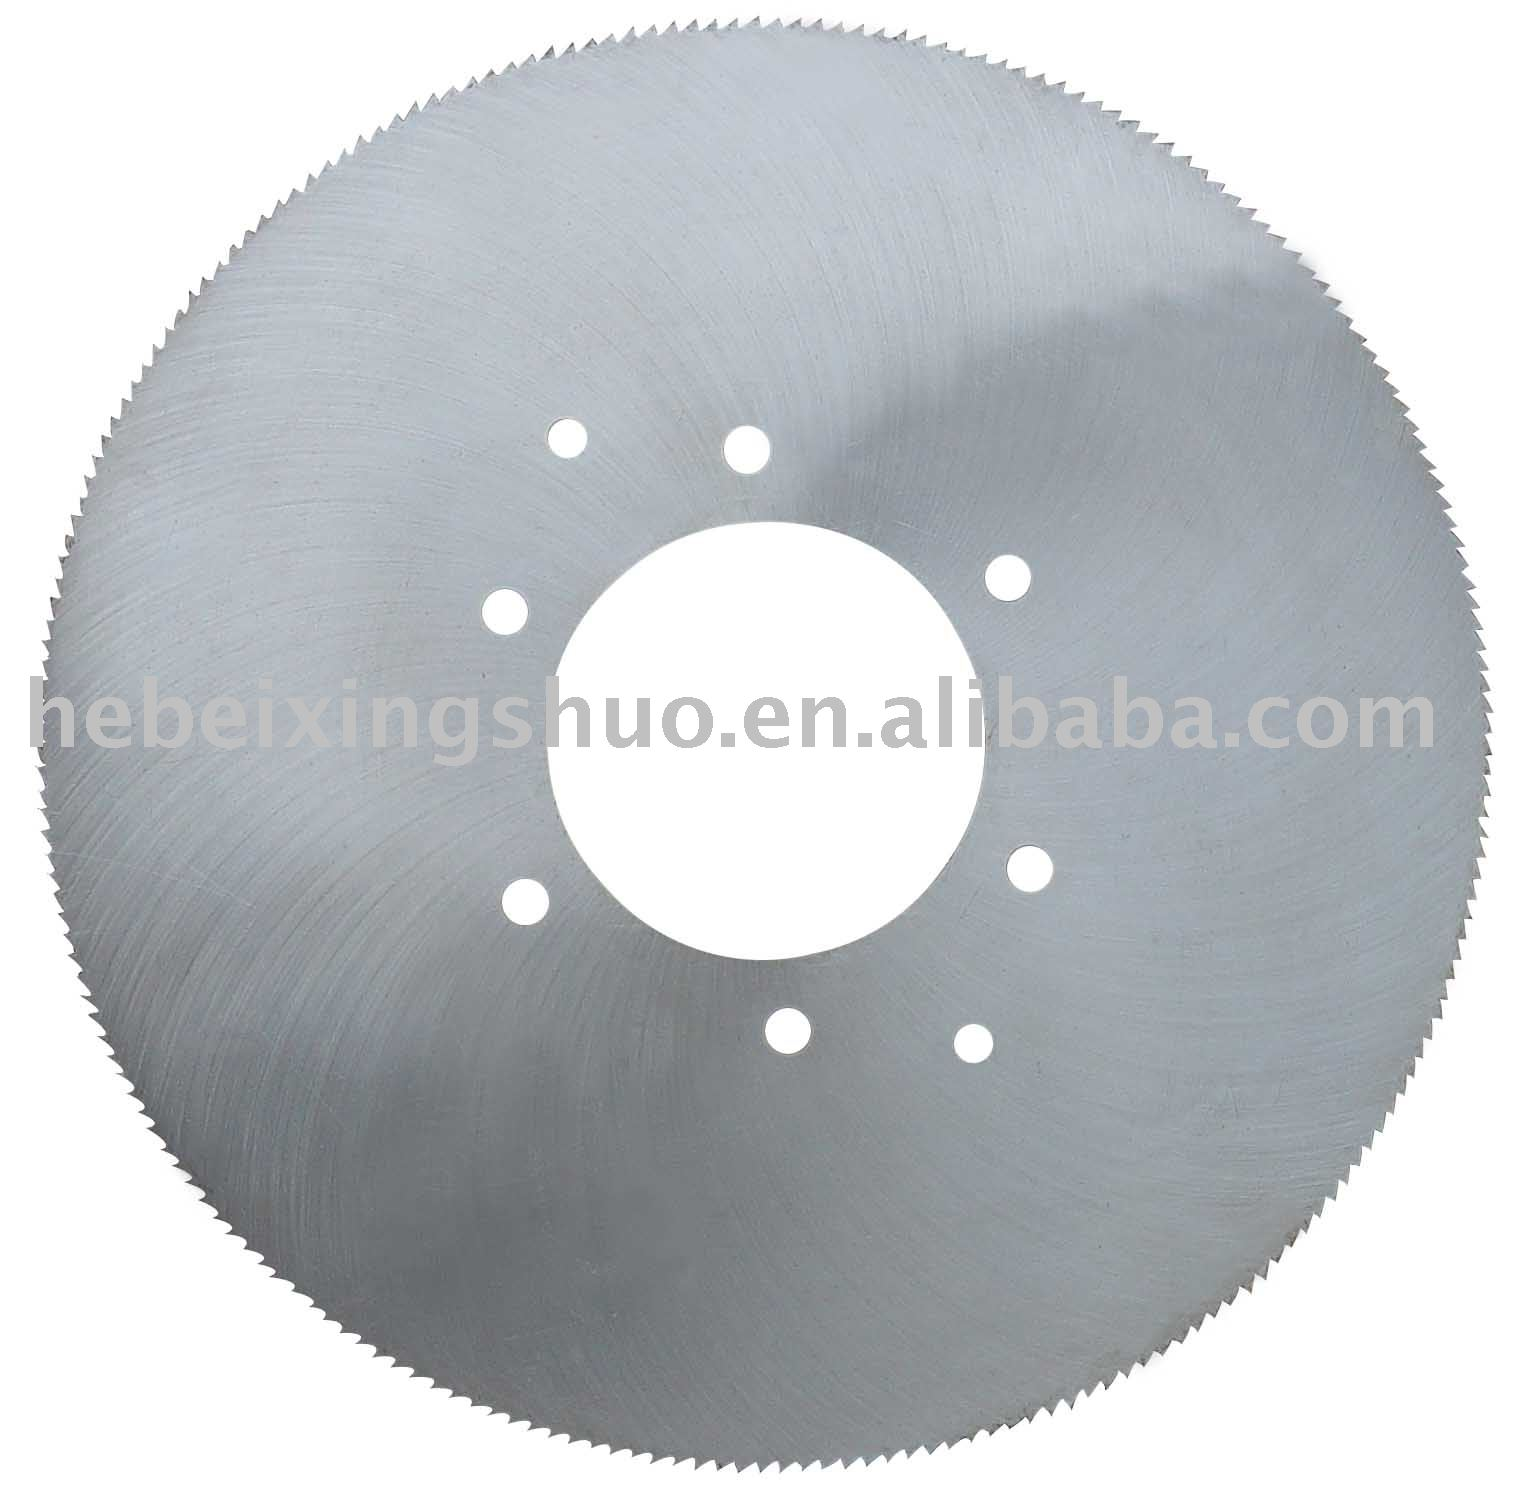 Metal hot cutting saw blades